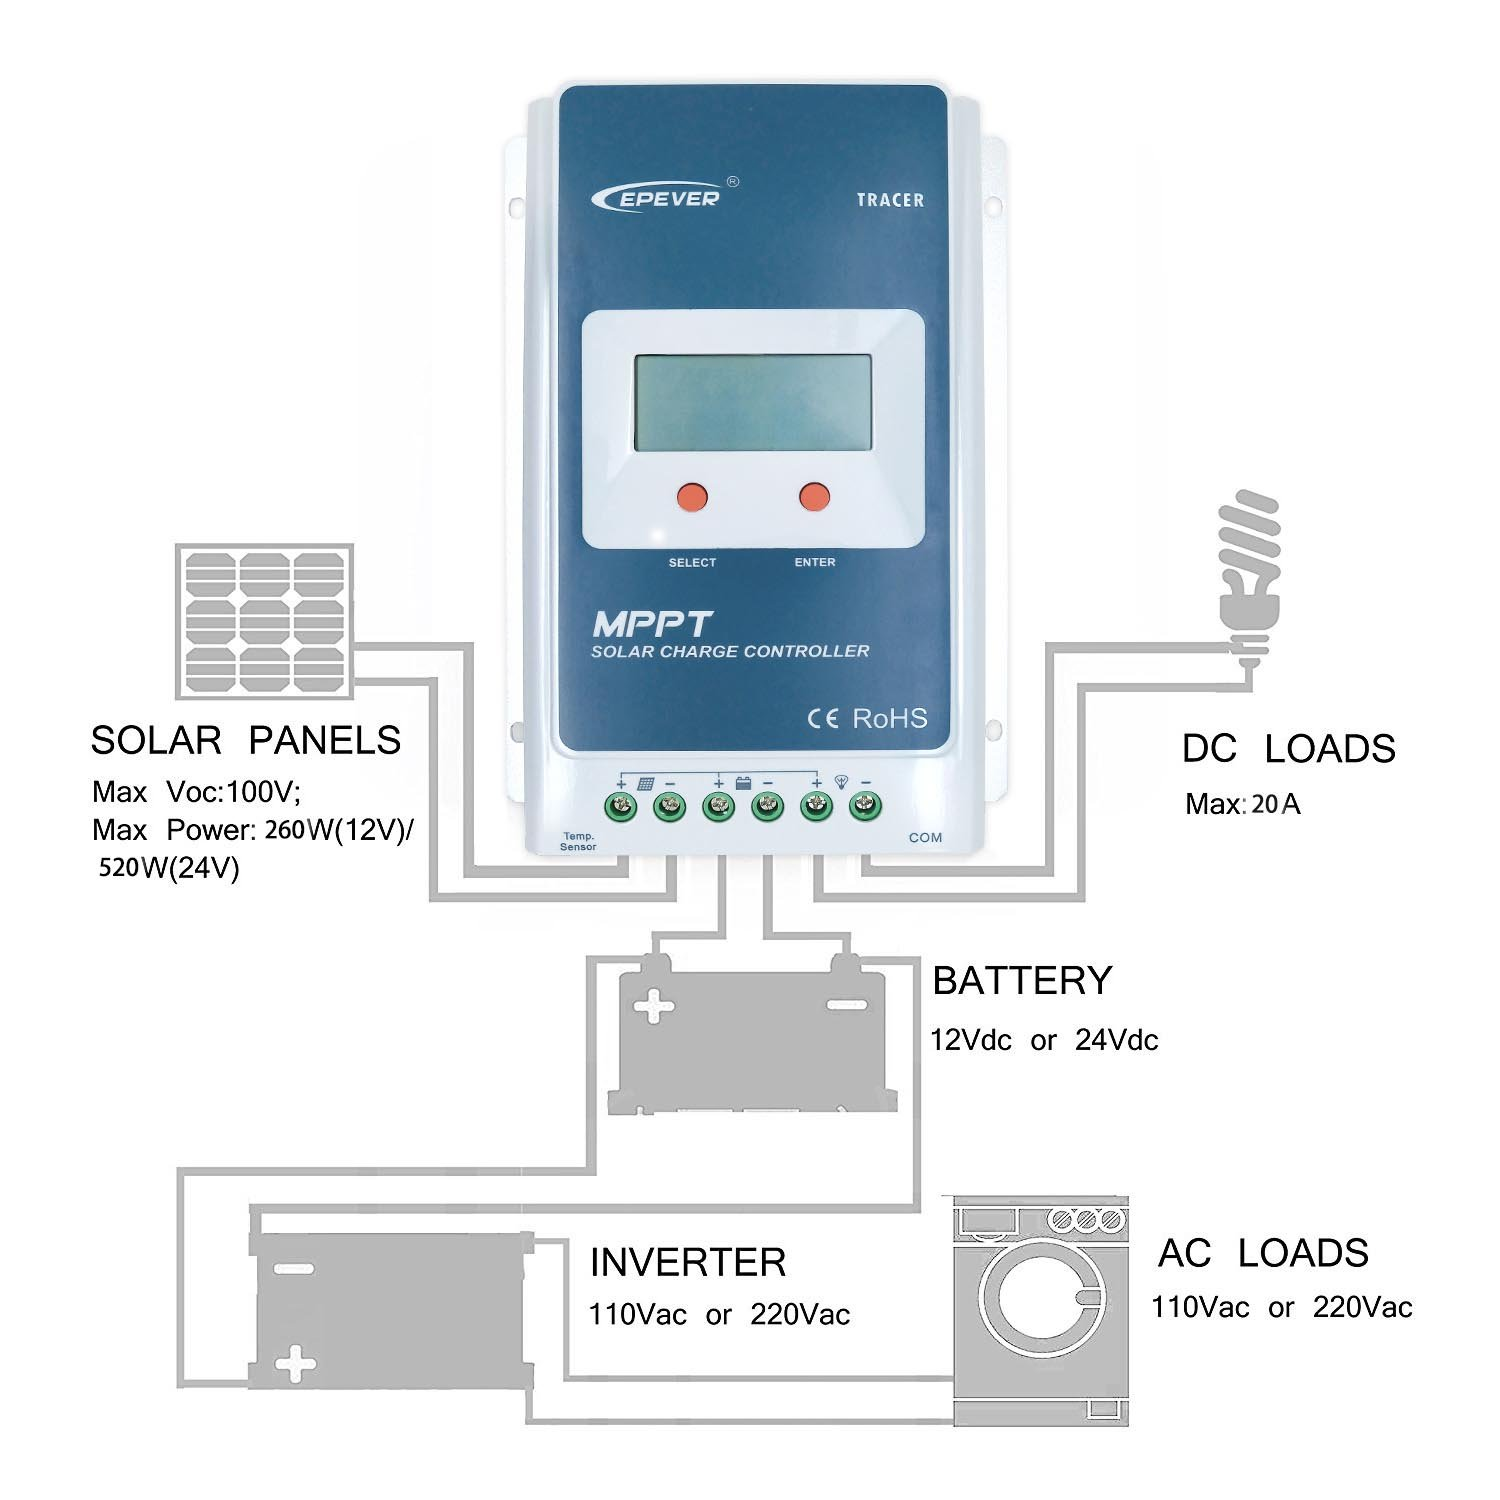 EPEVER MPPT Solar Charge Controller 20A 12V/24V Auto Work Tracer2210A Solar Panel Regulator with LCD Display Max PV 100V Input Power 260W/520W (20A, Tracer2210A) by EPsolar (Image #6)